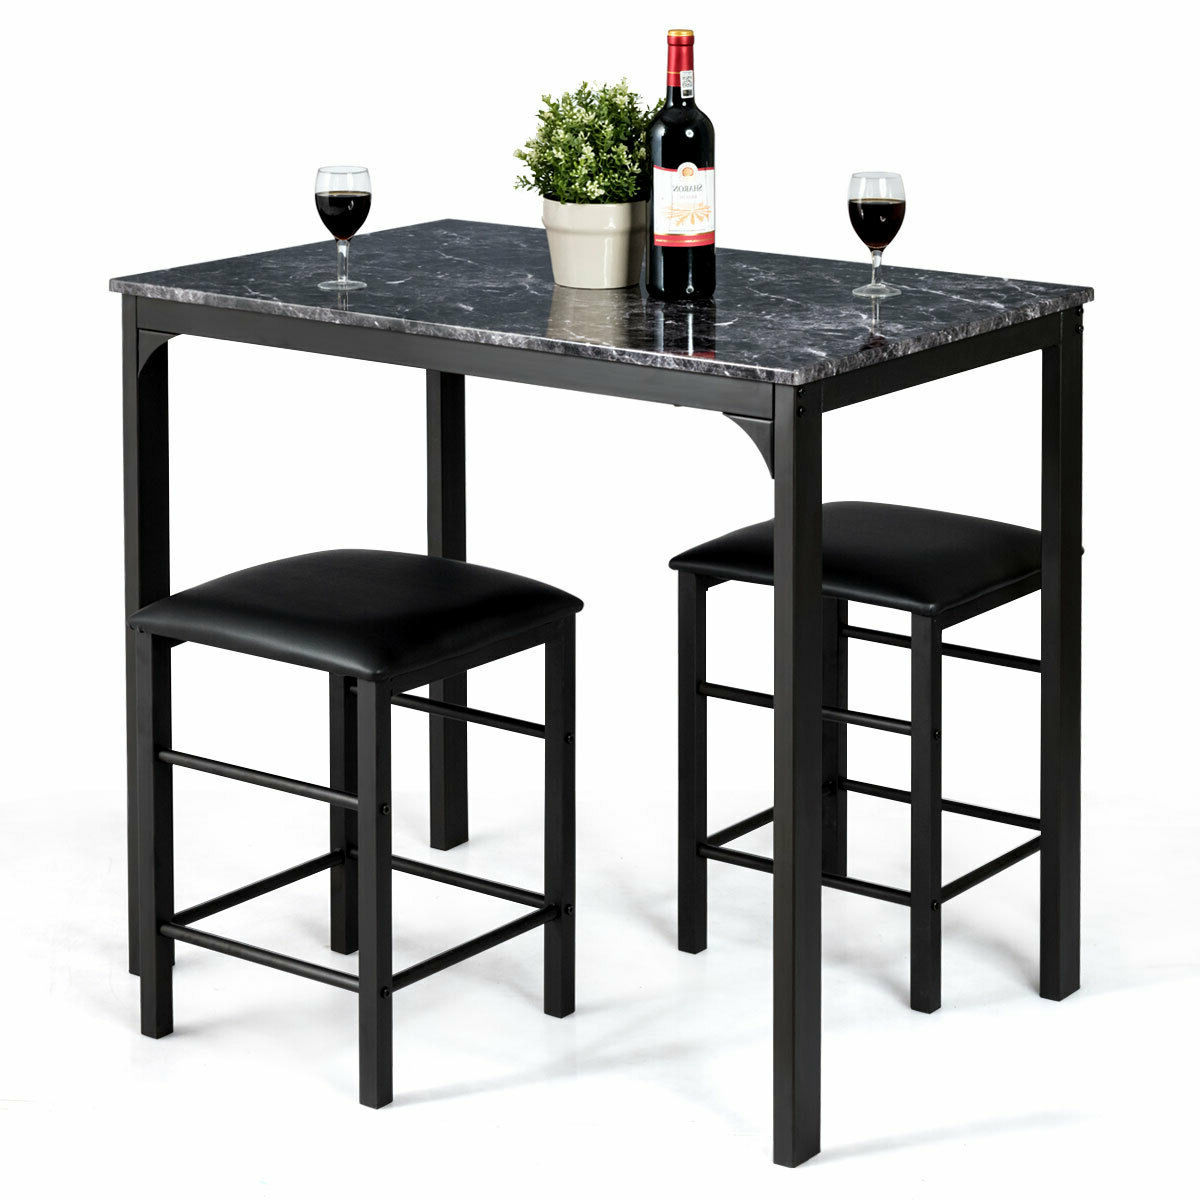 3 Piece Counter Height Dining Set Faux Marble Table 2 Pertaining To Best And Newest Desloge Counter Height Trestle Dining Tables (View 10 of 20)